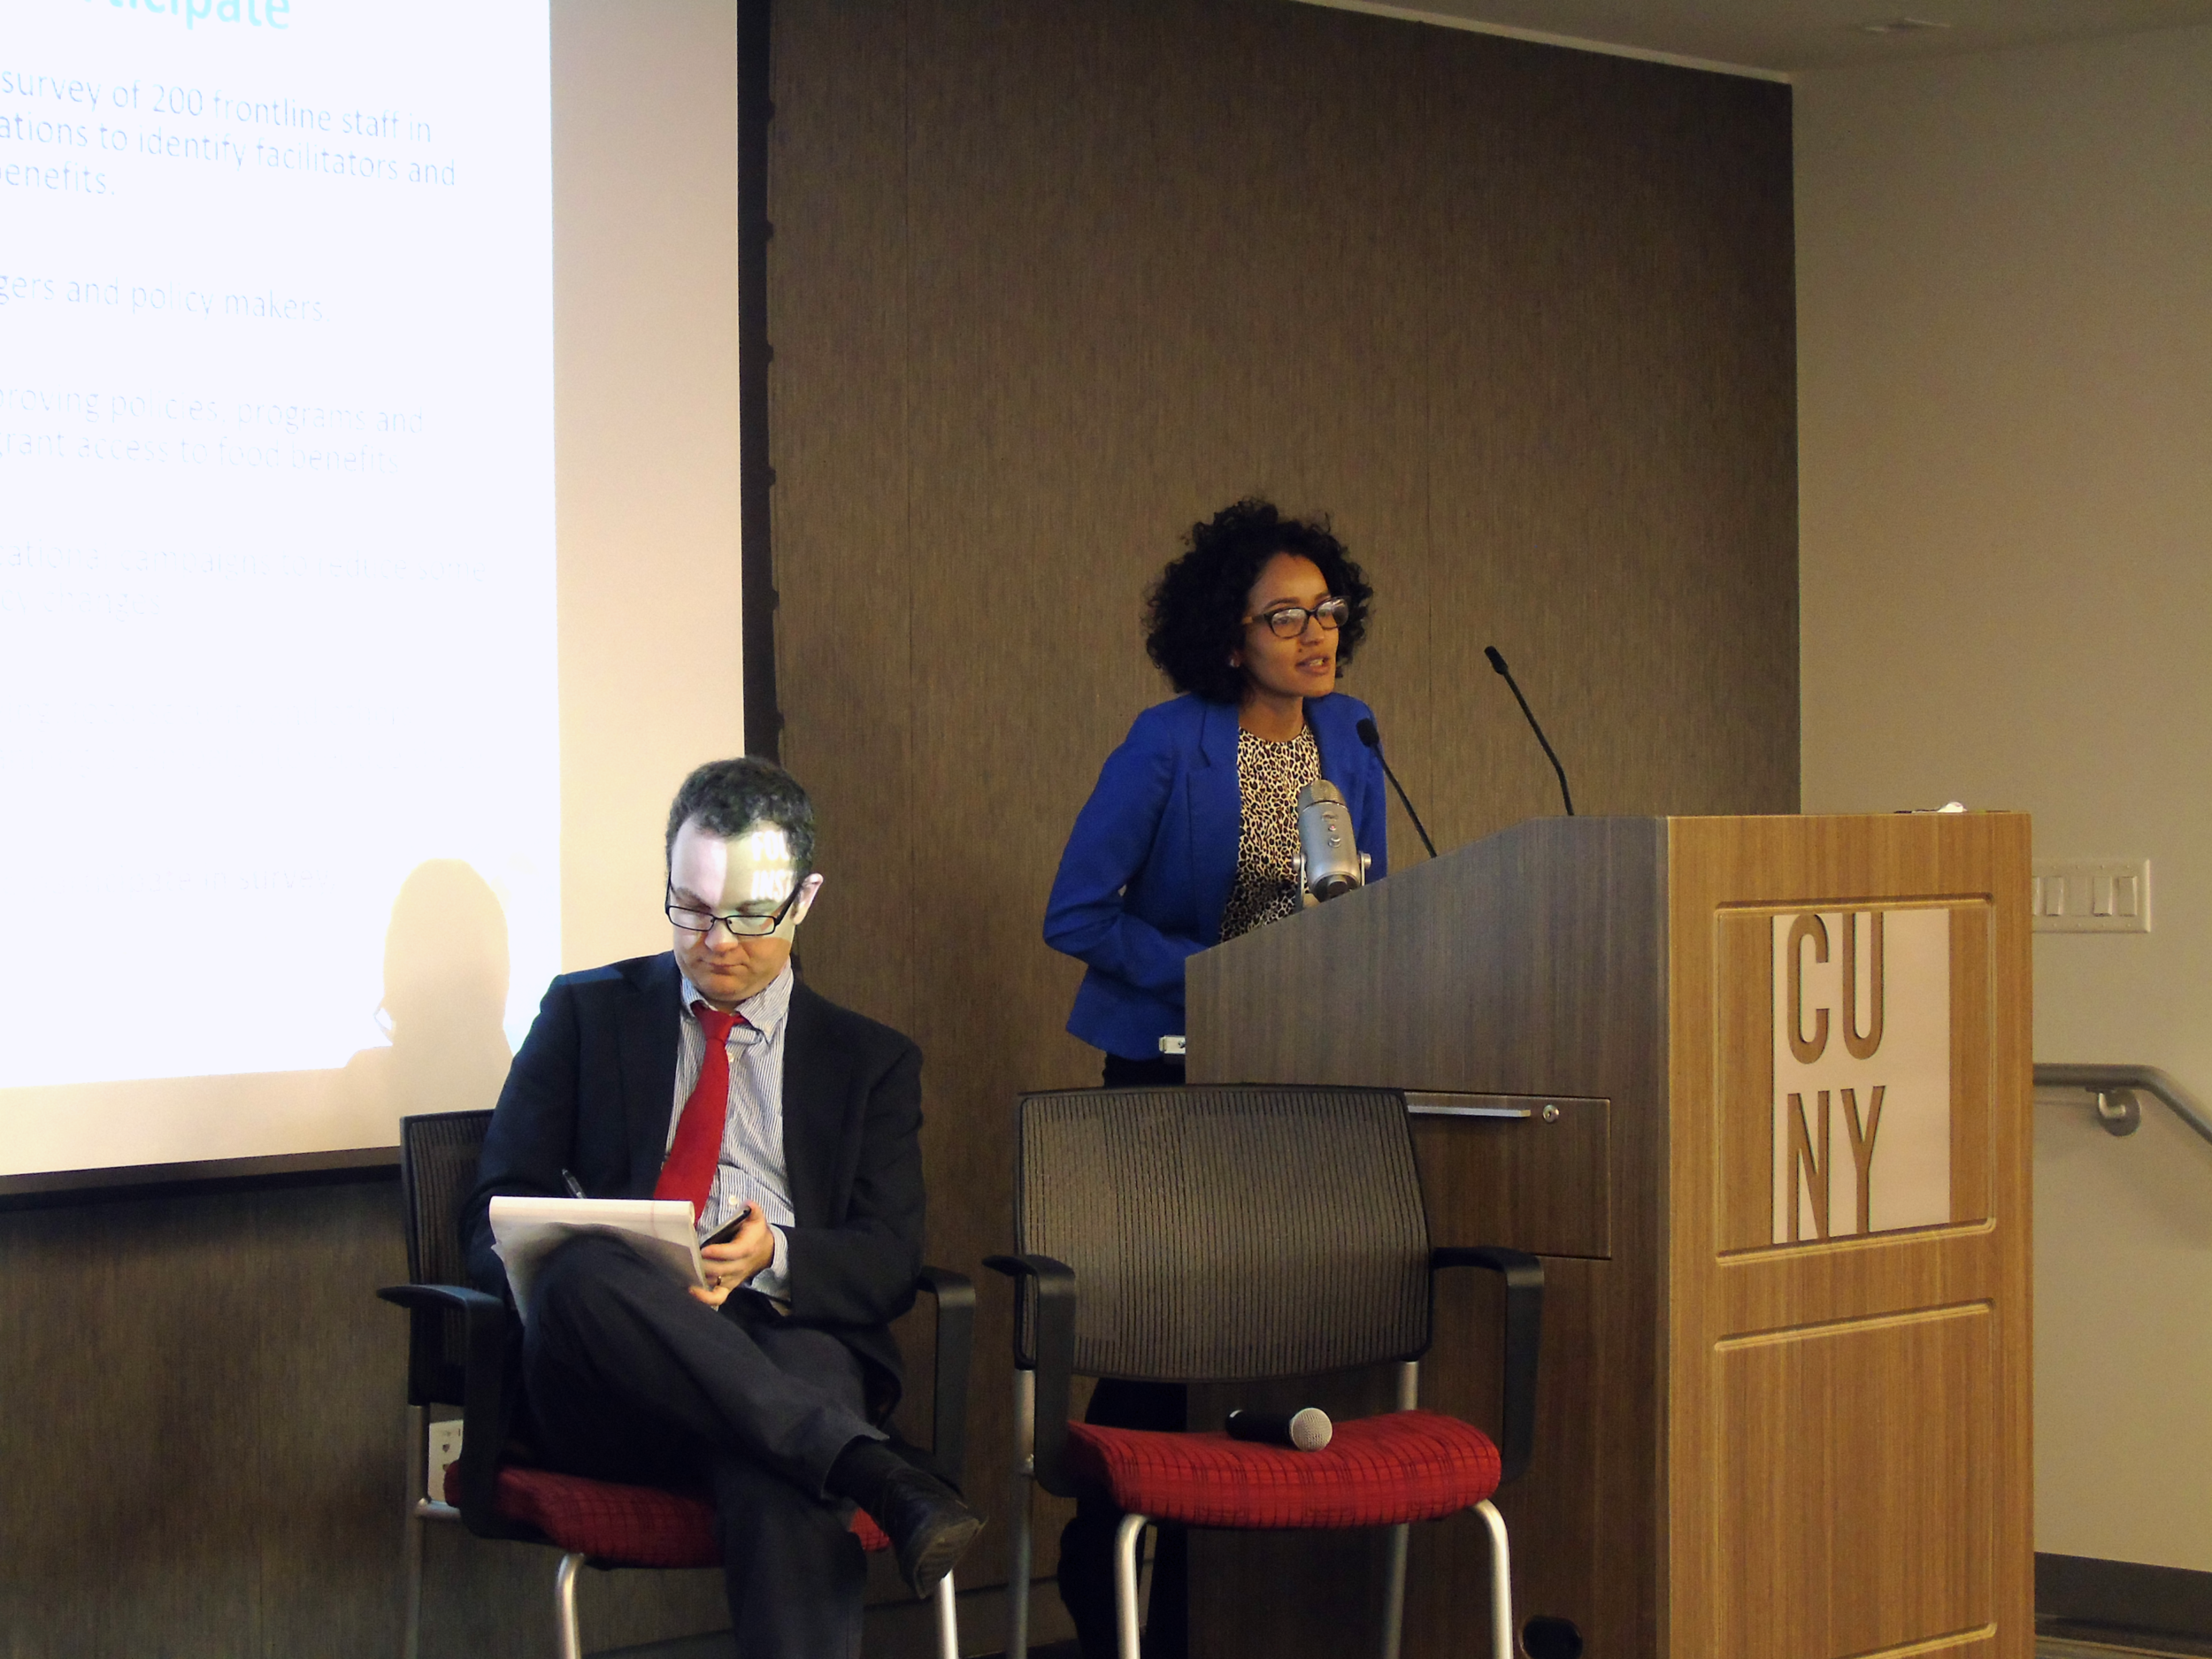 CUNY Urban Food Policy Institute Researcher Anabel Perez-Jimenez addresses the audience at the forum on November 17, 2016.